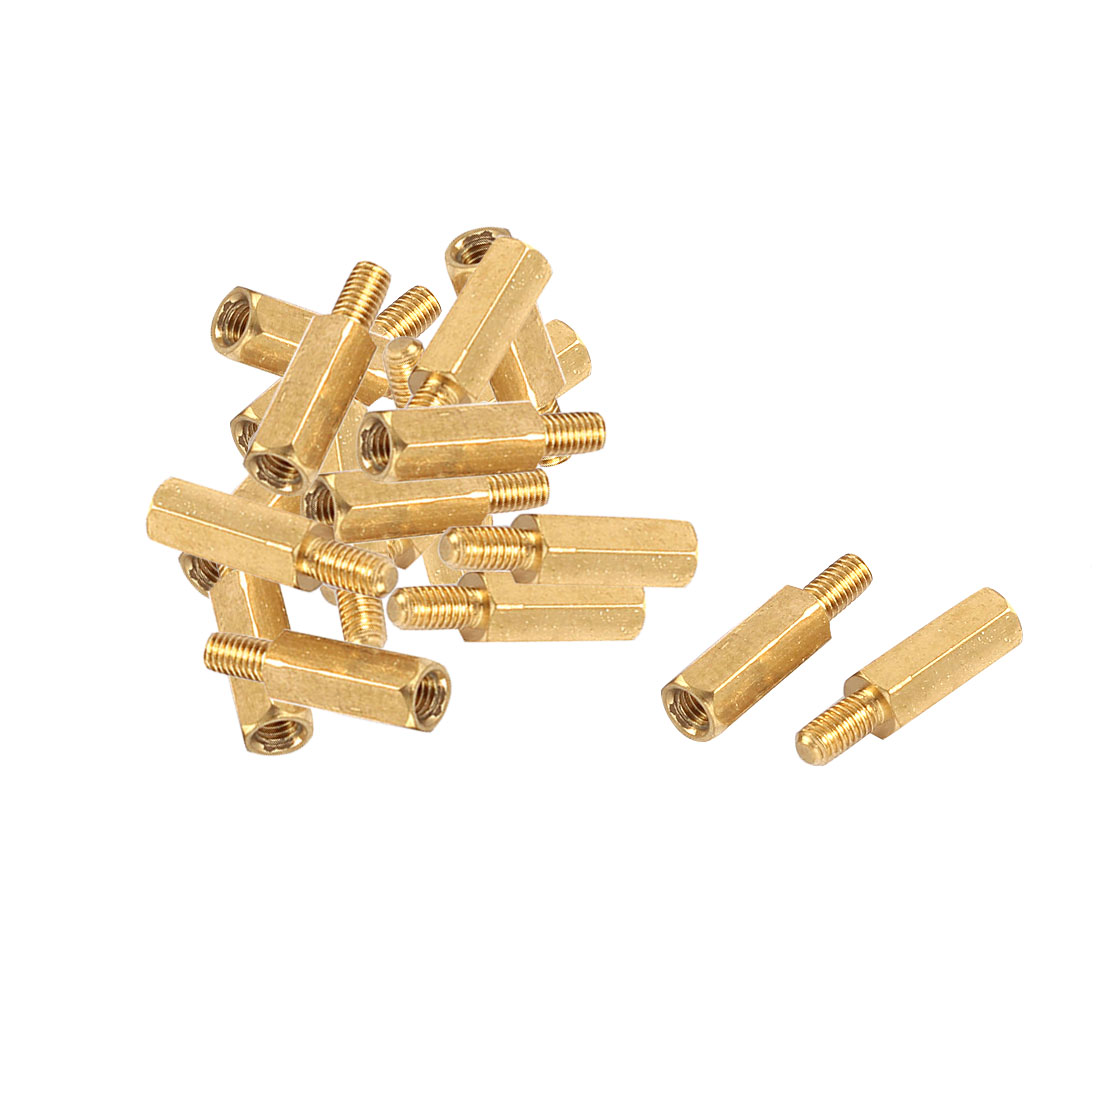 20 Pcs M3 12+6mm Brass Standoff Hexagonal Spacer for PC PCB Motherboard